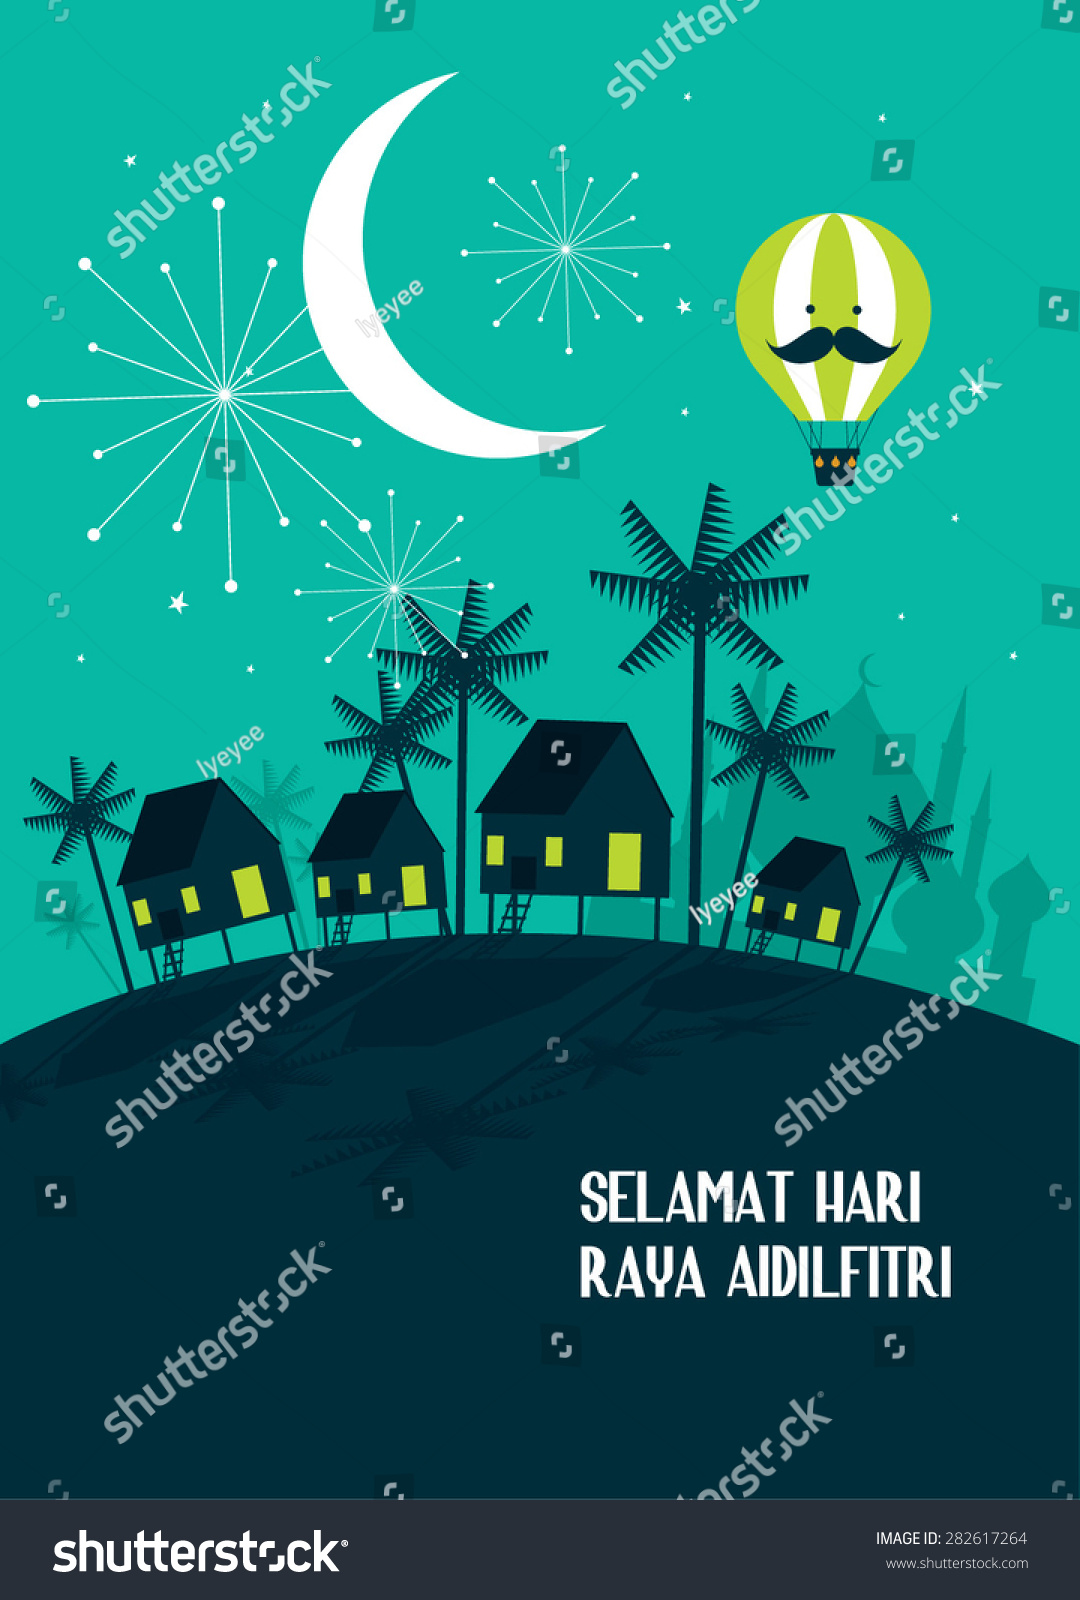 essay on hari raya aidilfitri Hari raya aidilfitri is a religious holiday celebrated by muslims hari raya literally means 'celebration day', and hari raya aidilfitri is the day that.